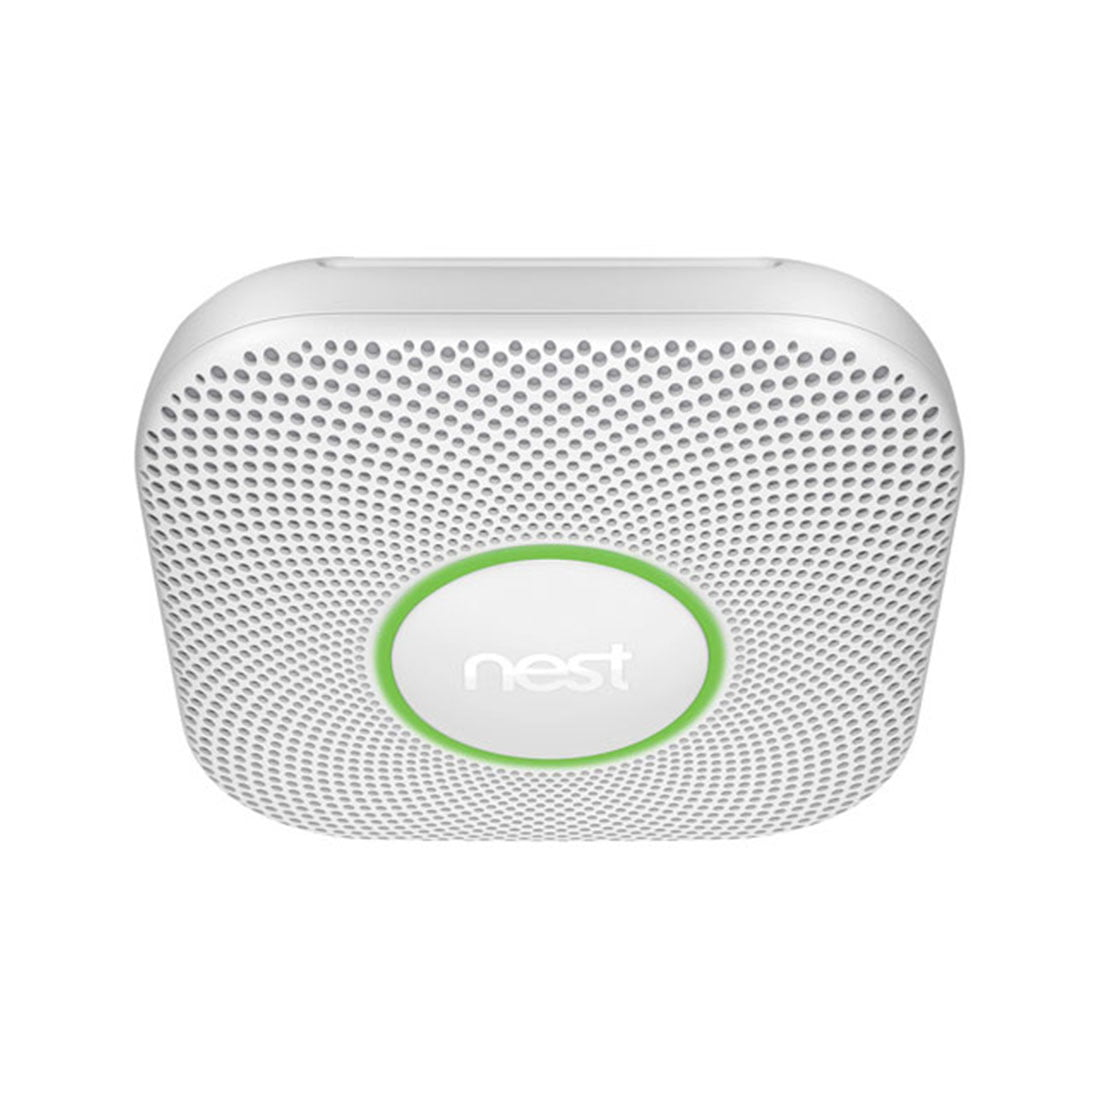 Nest Protect Wi Fi Smoke Amp Carbon Monoxide Alarm Wired